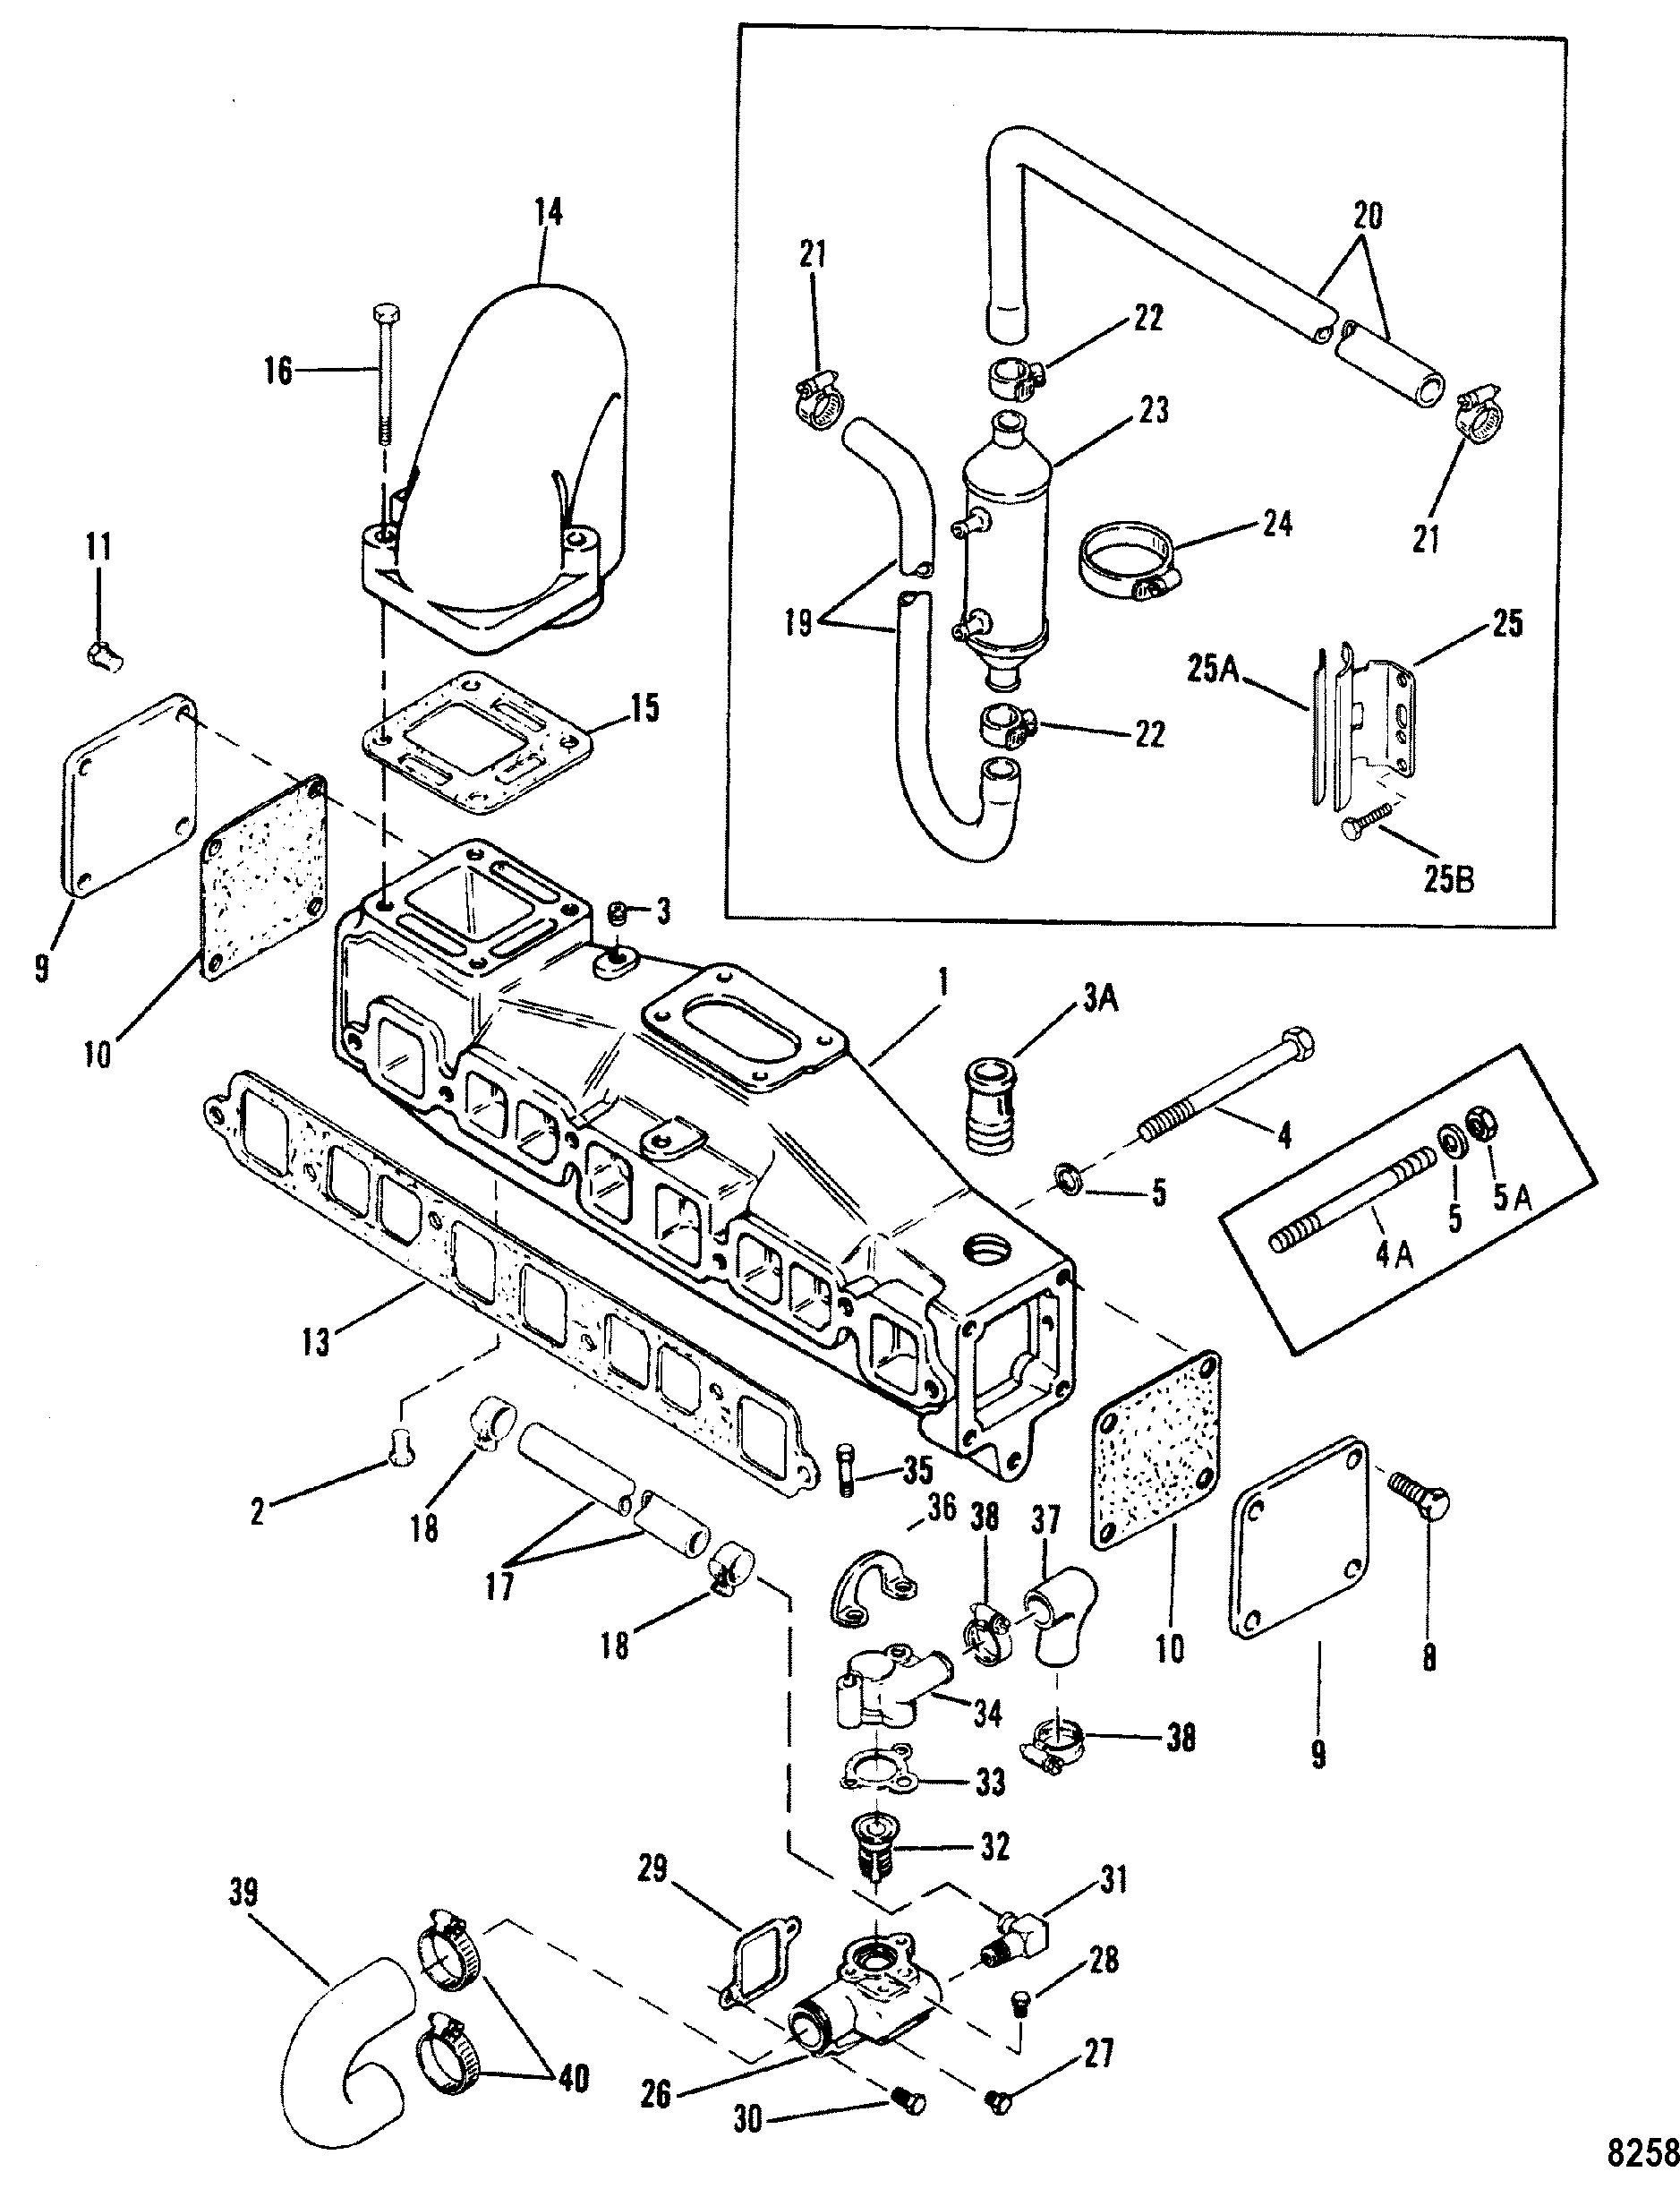 Exhaust manifold and water system with end caps 3 0lx for mercruiser